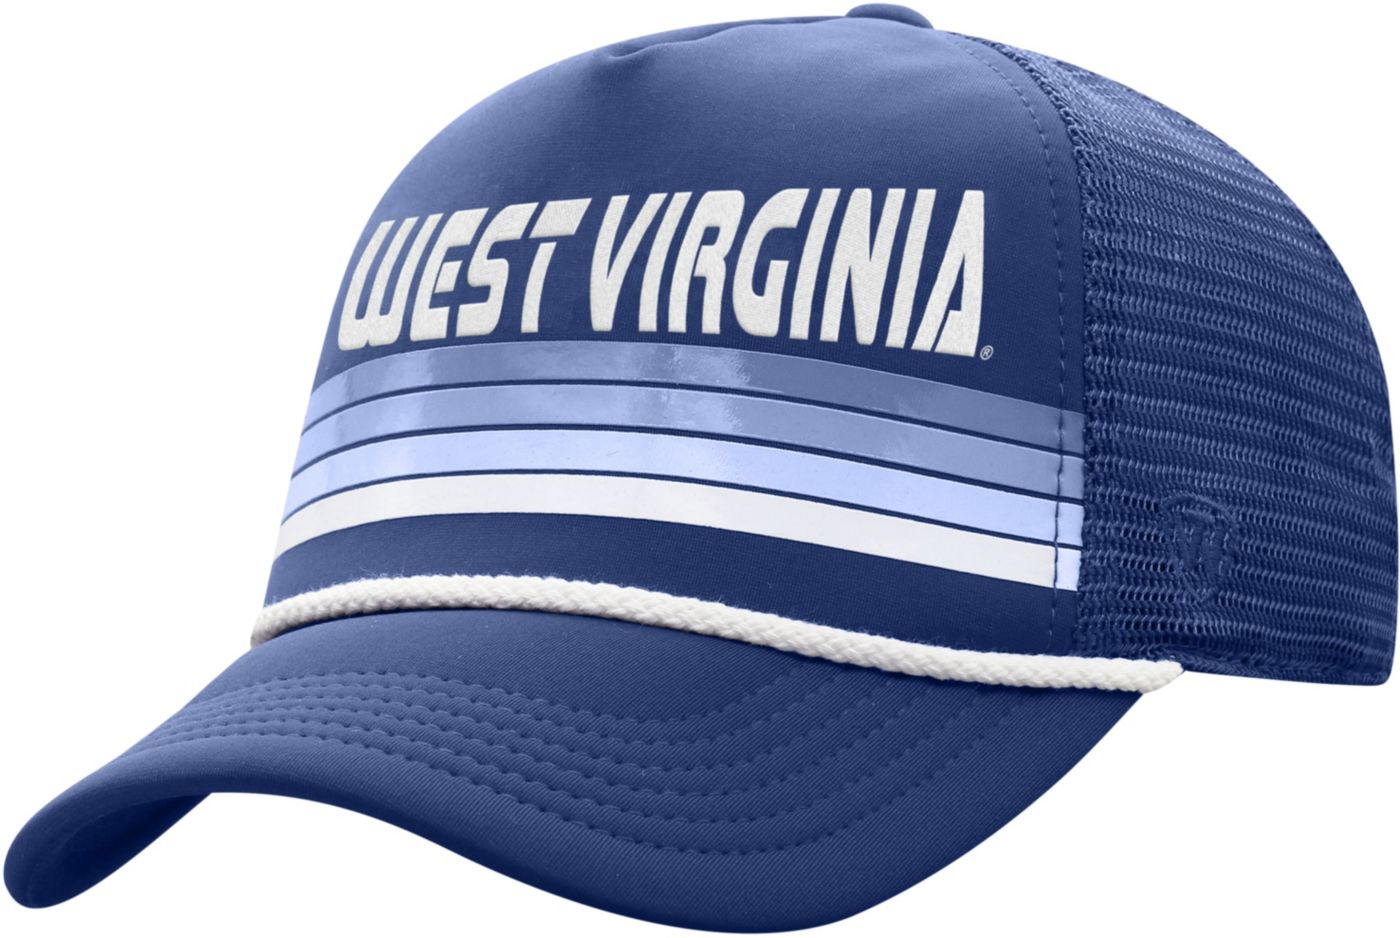 Top of the World Men's West Virginia Mountaineers Blue Wipeout Adjustable Snapback Hat